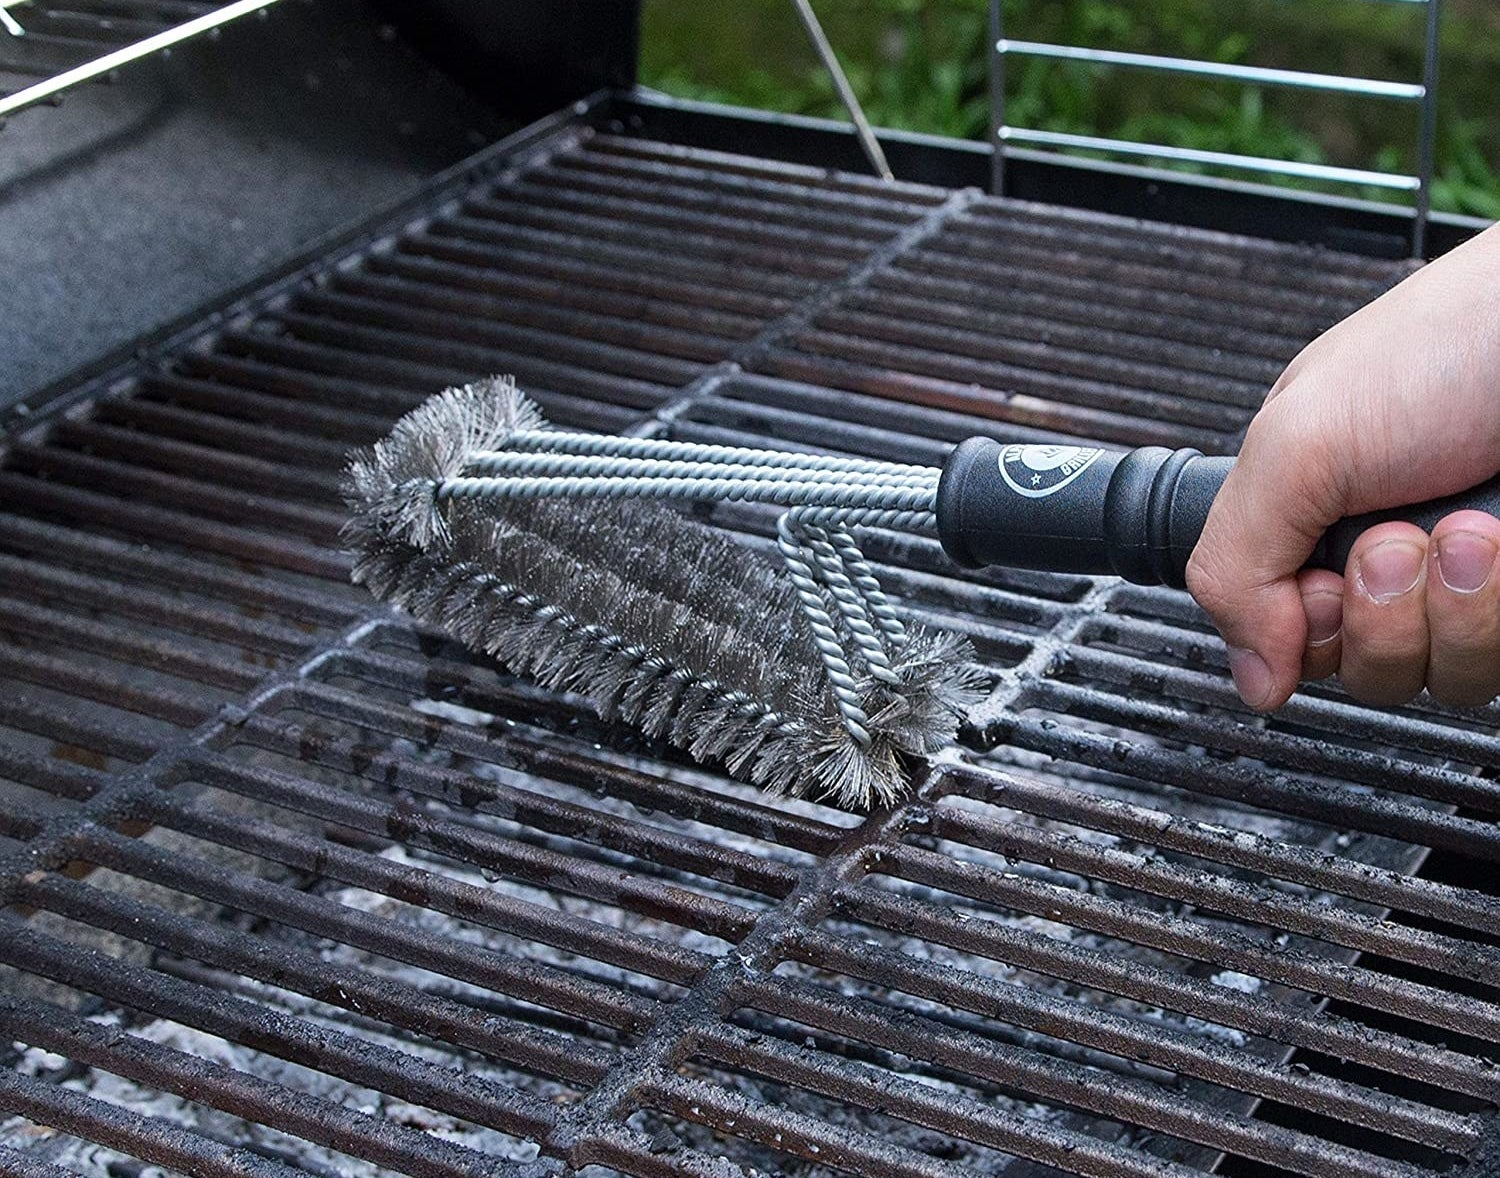 A model's hand using a black-handled silver wire brush to clean the grill